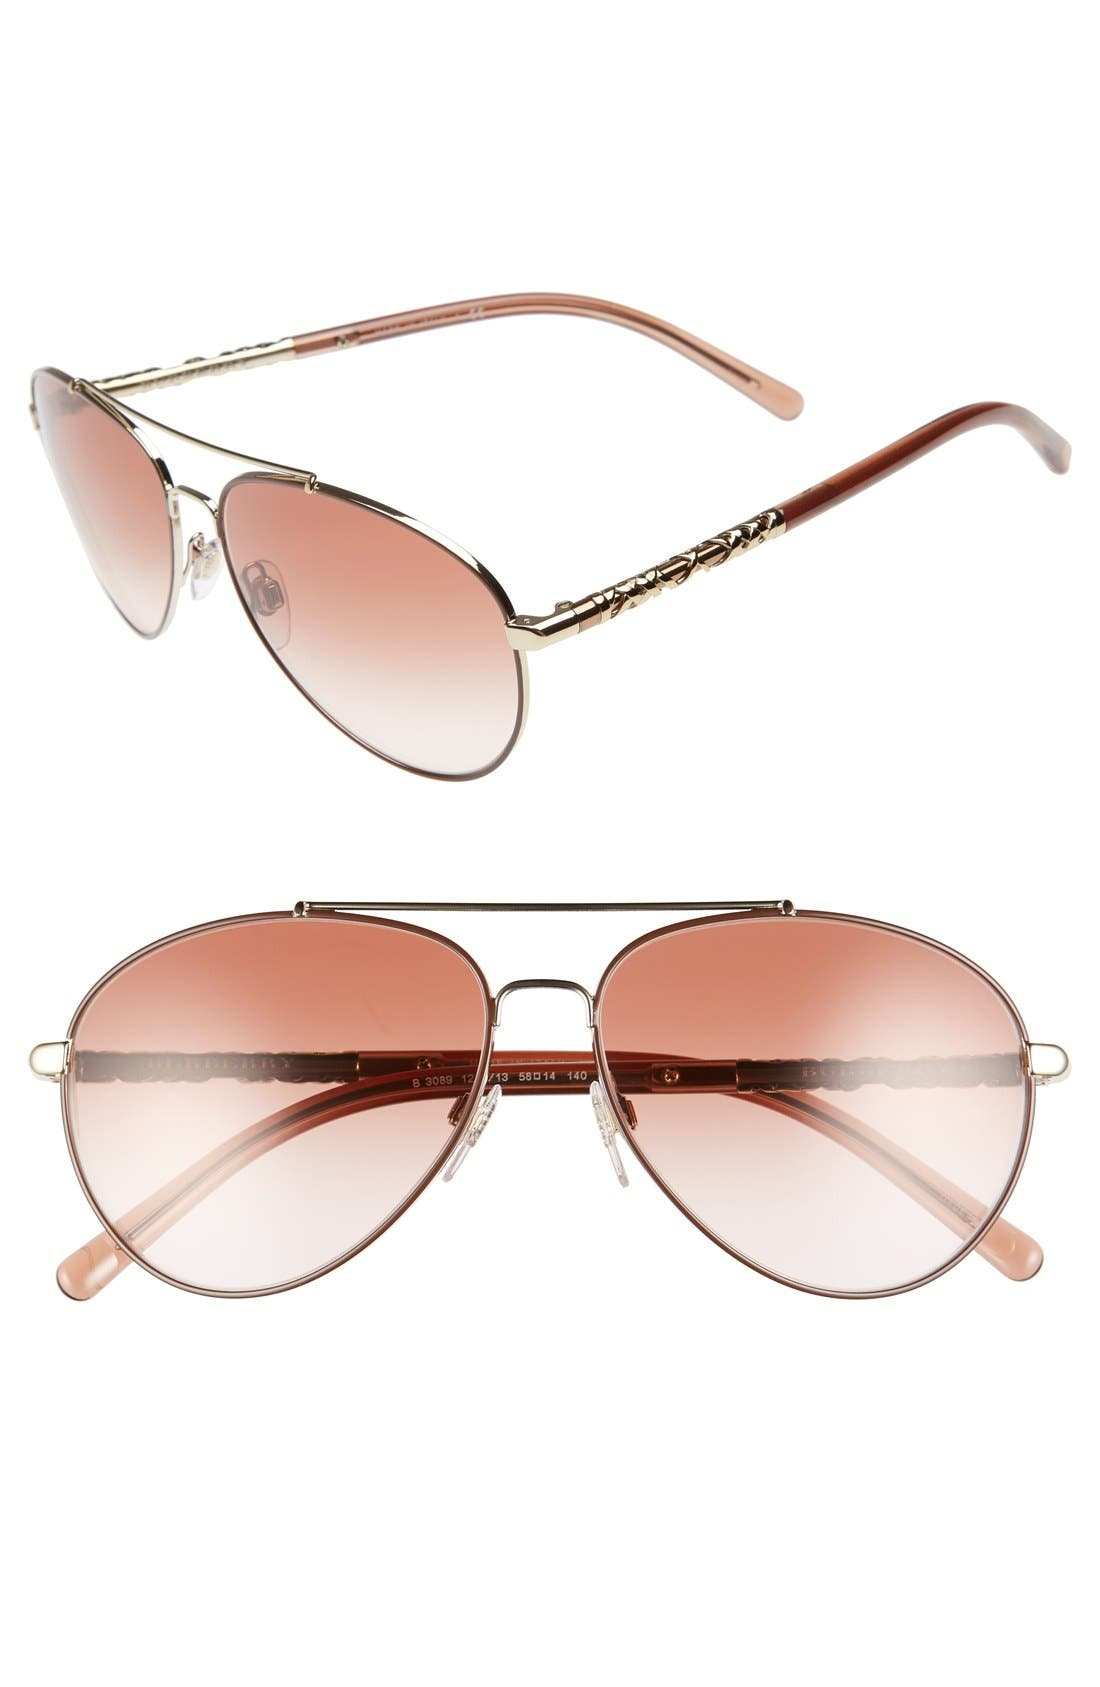 Main Image - Burberry 58mm Aviator Sunglasses